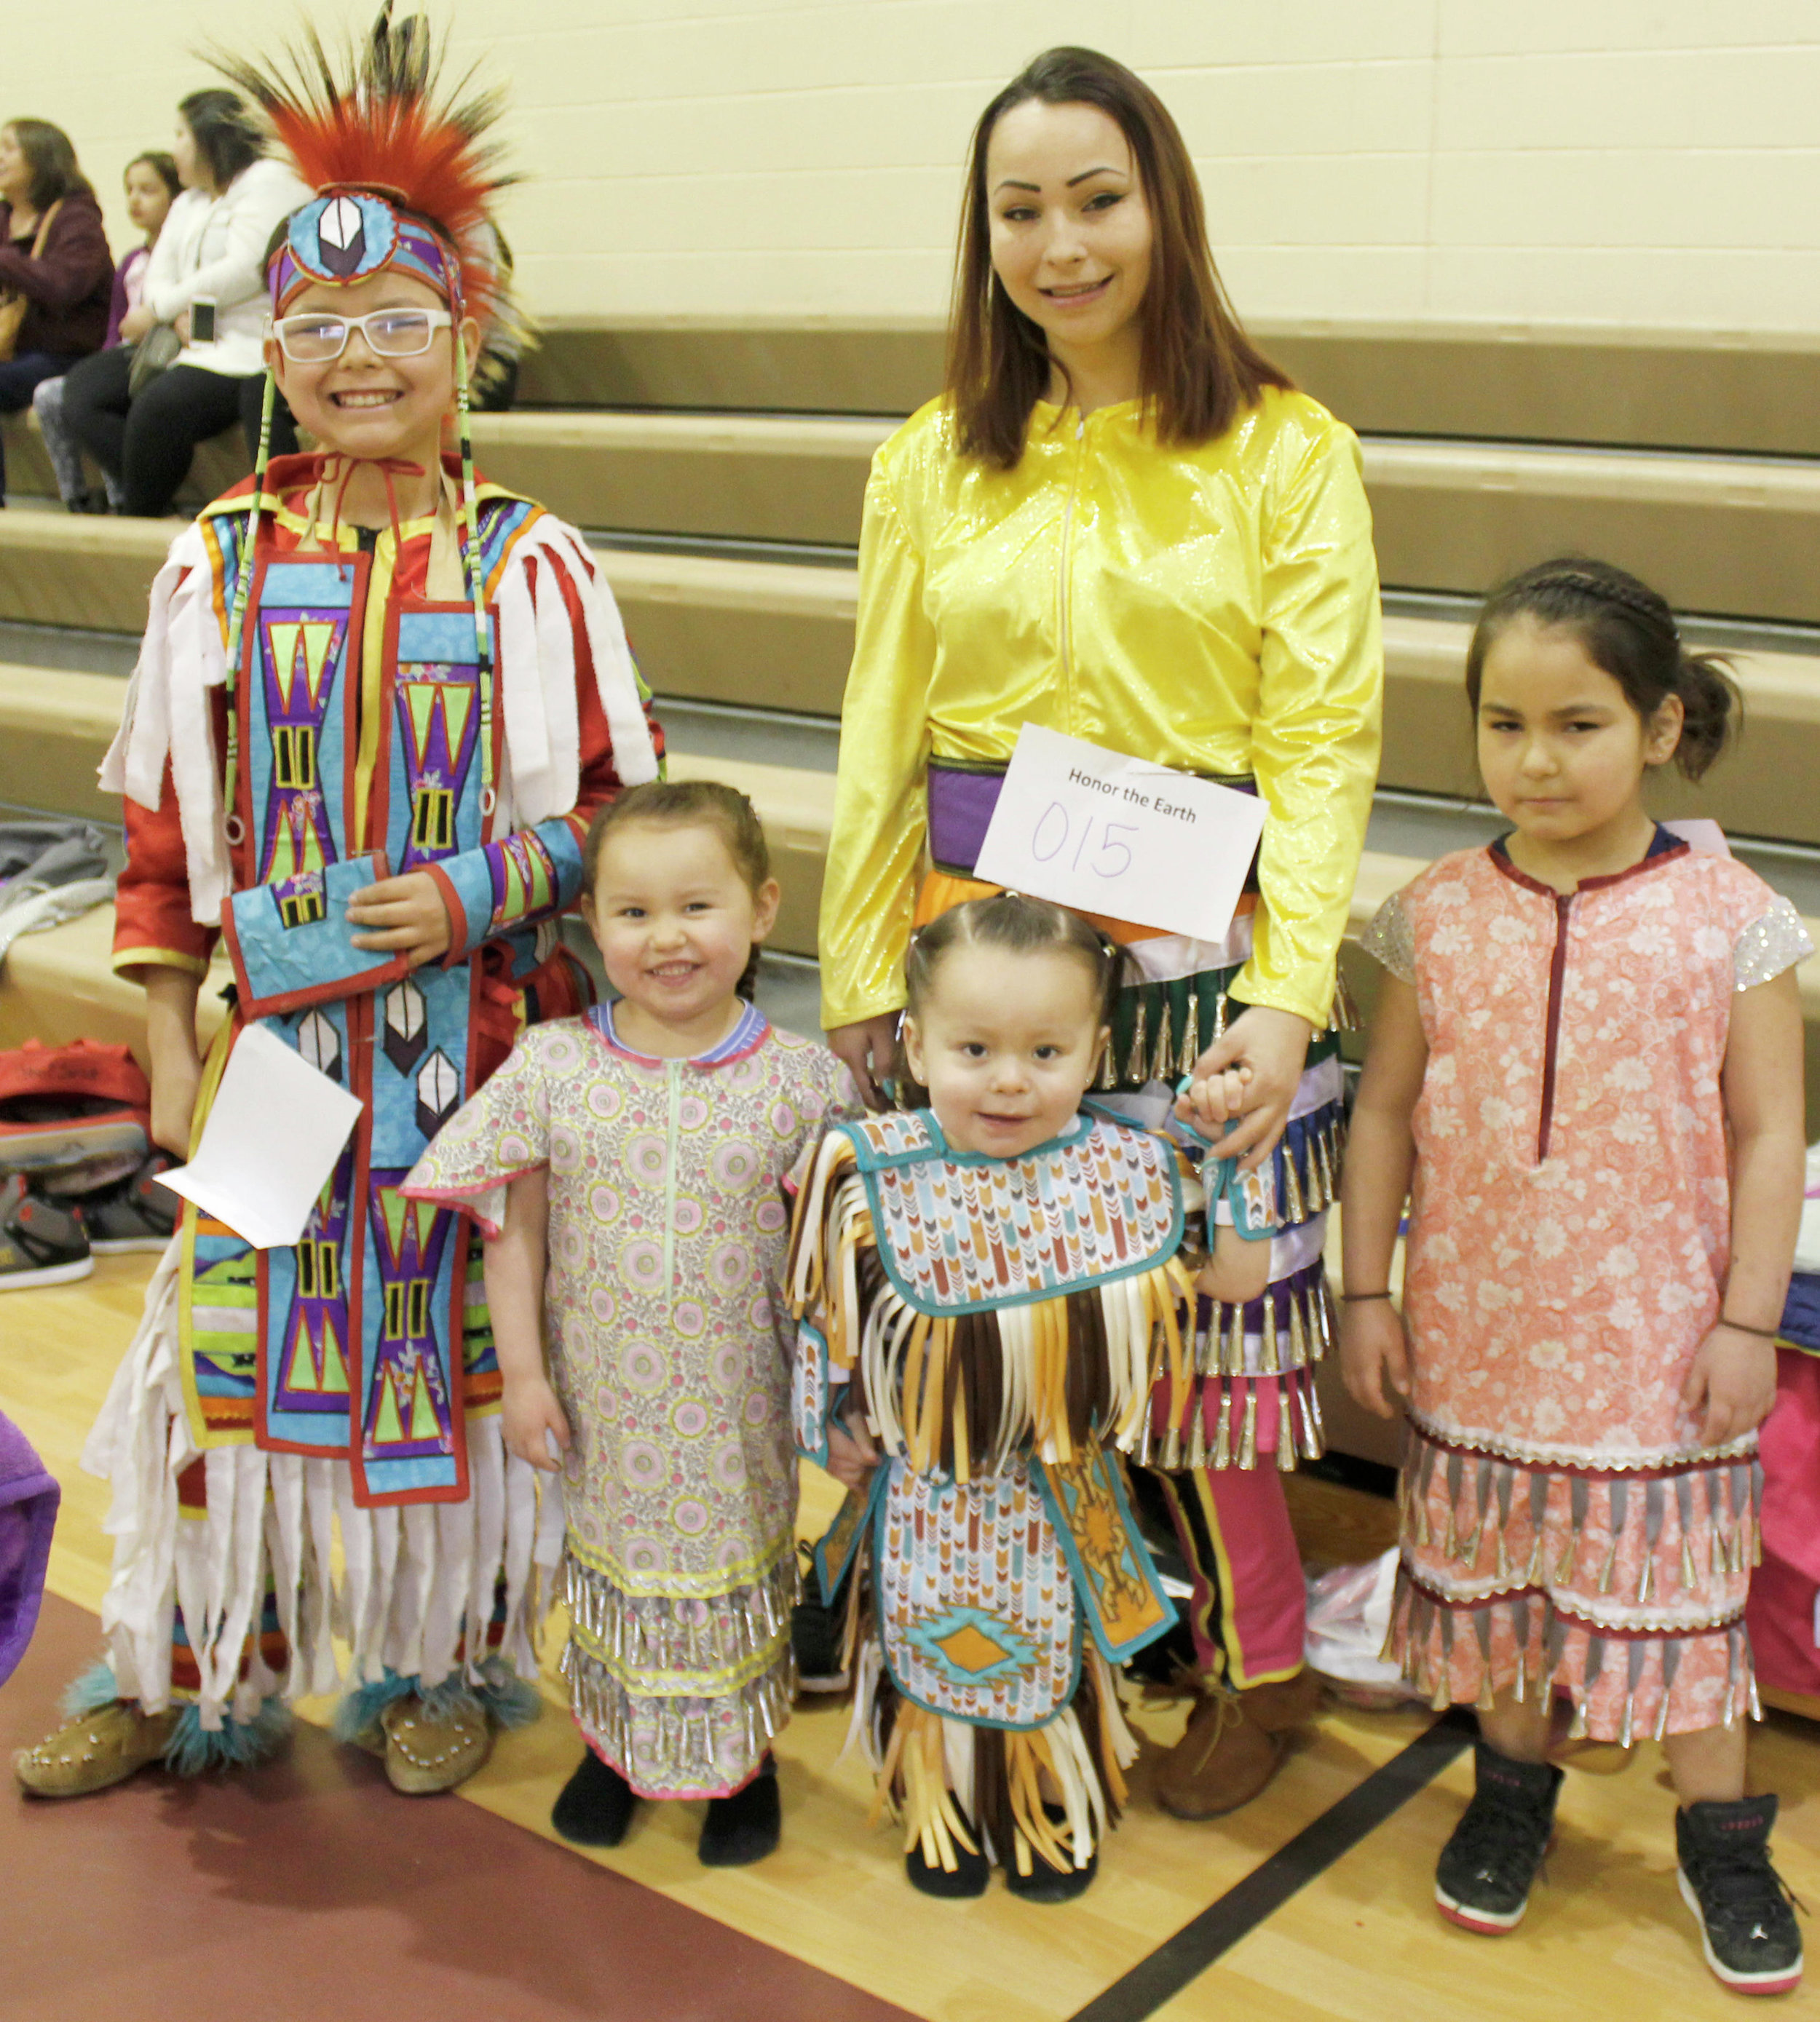 Kathi Larson and her children, Keagan Goodman, Tylie Smith, Tyler Smith and Tacia Beauchamp prepare to represent the White Earth Band of Ojibwe at the opening of Saturday's powwow.